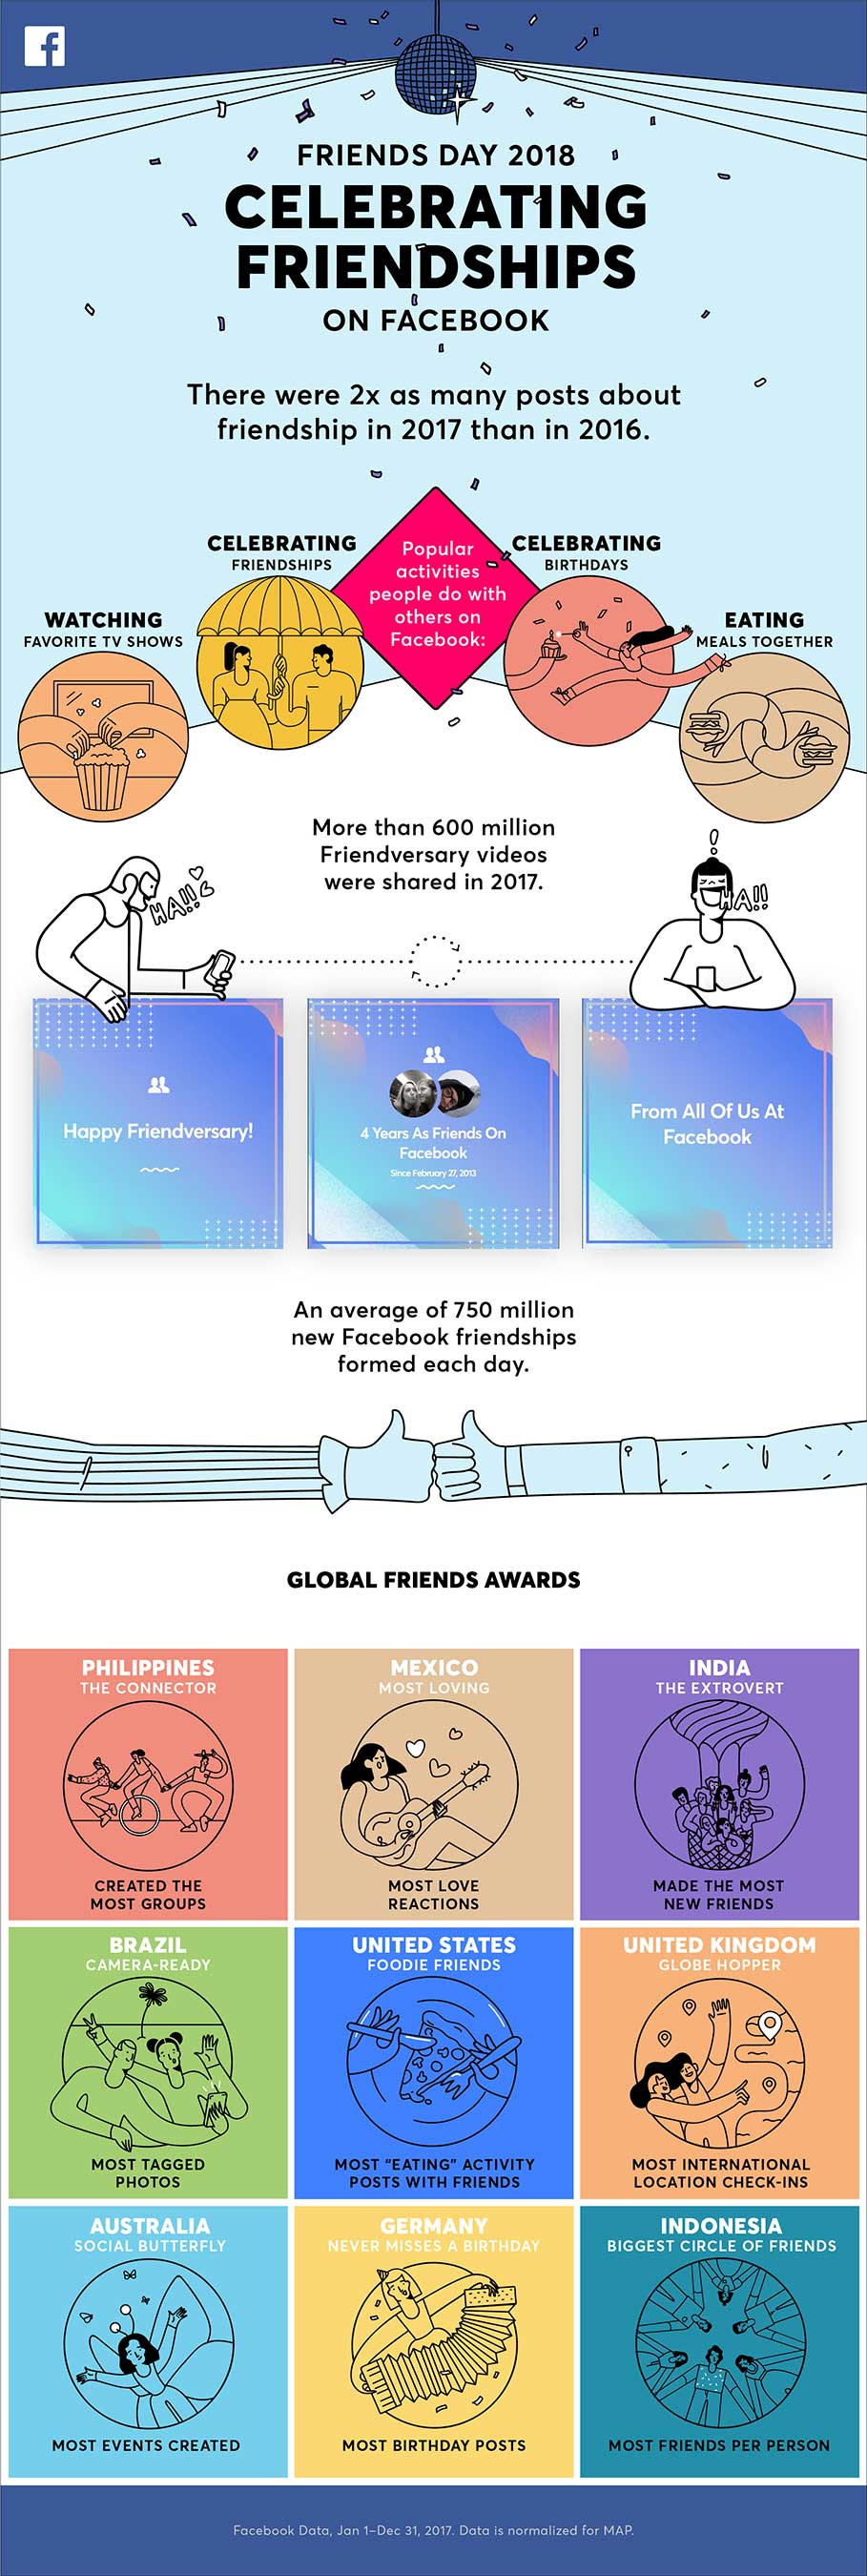 Friends Day Infographic